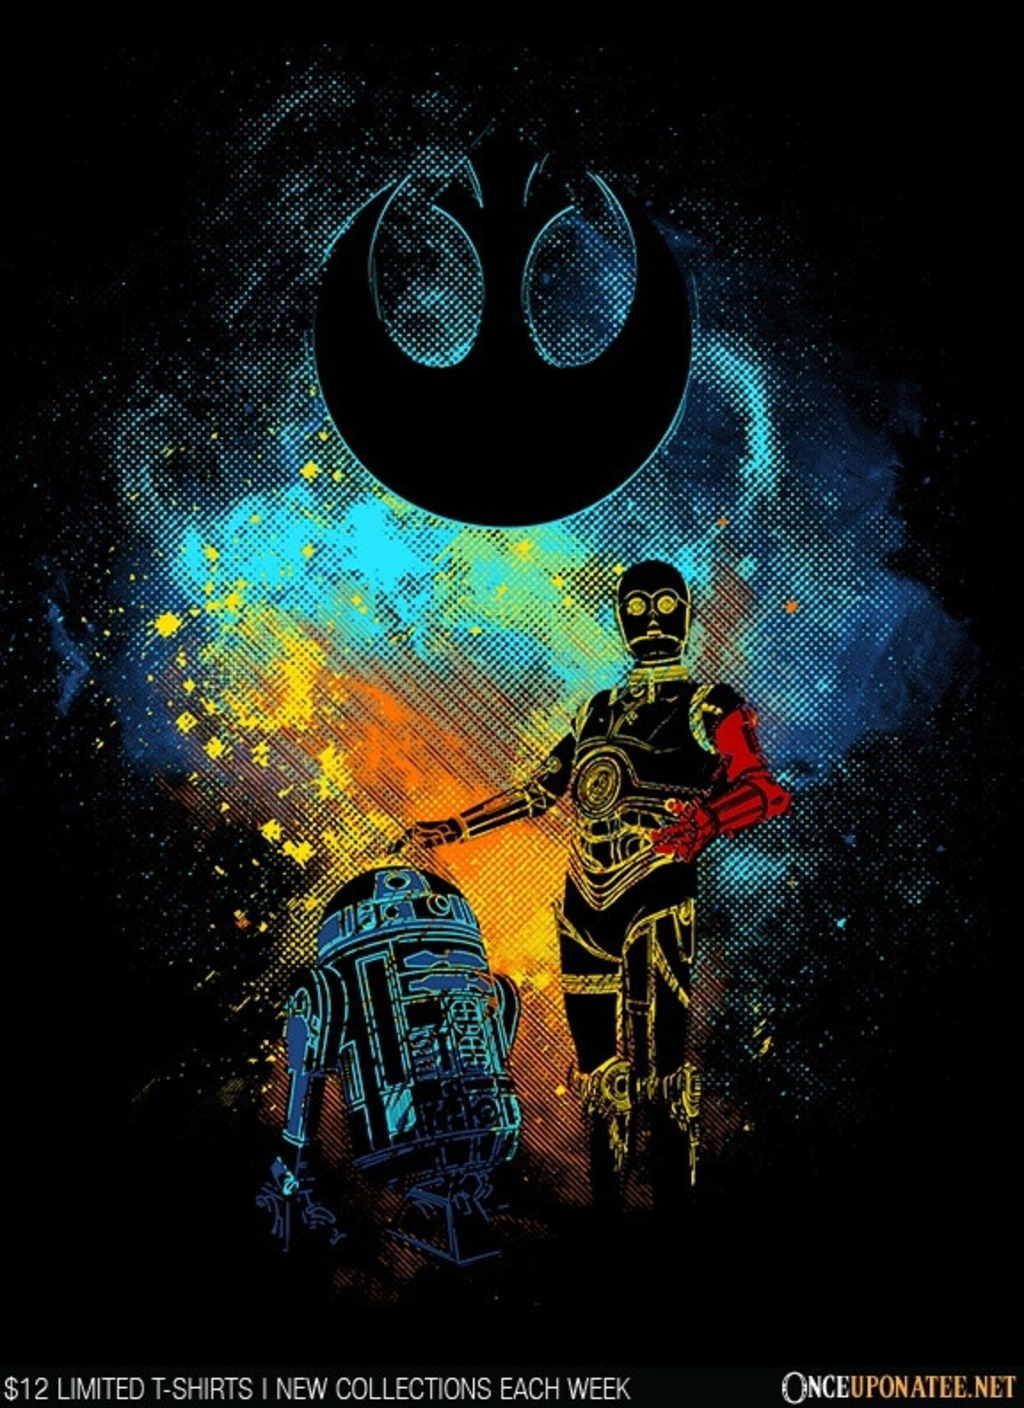 Once Upon a Tee: Droid Art